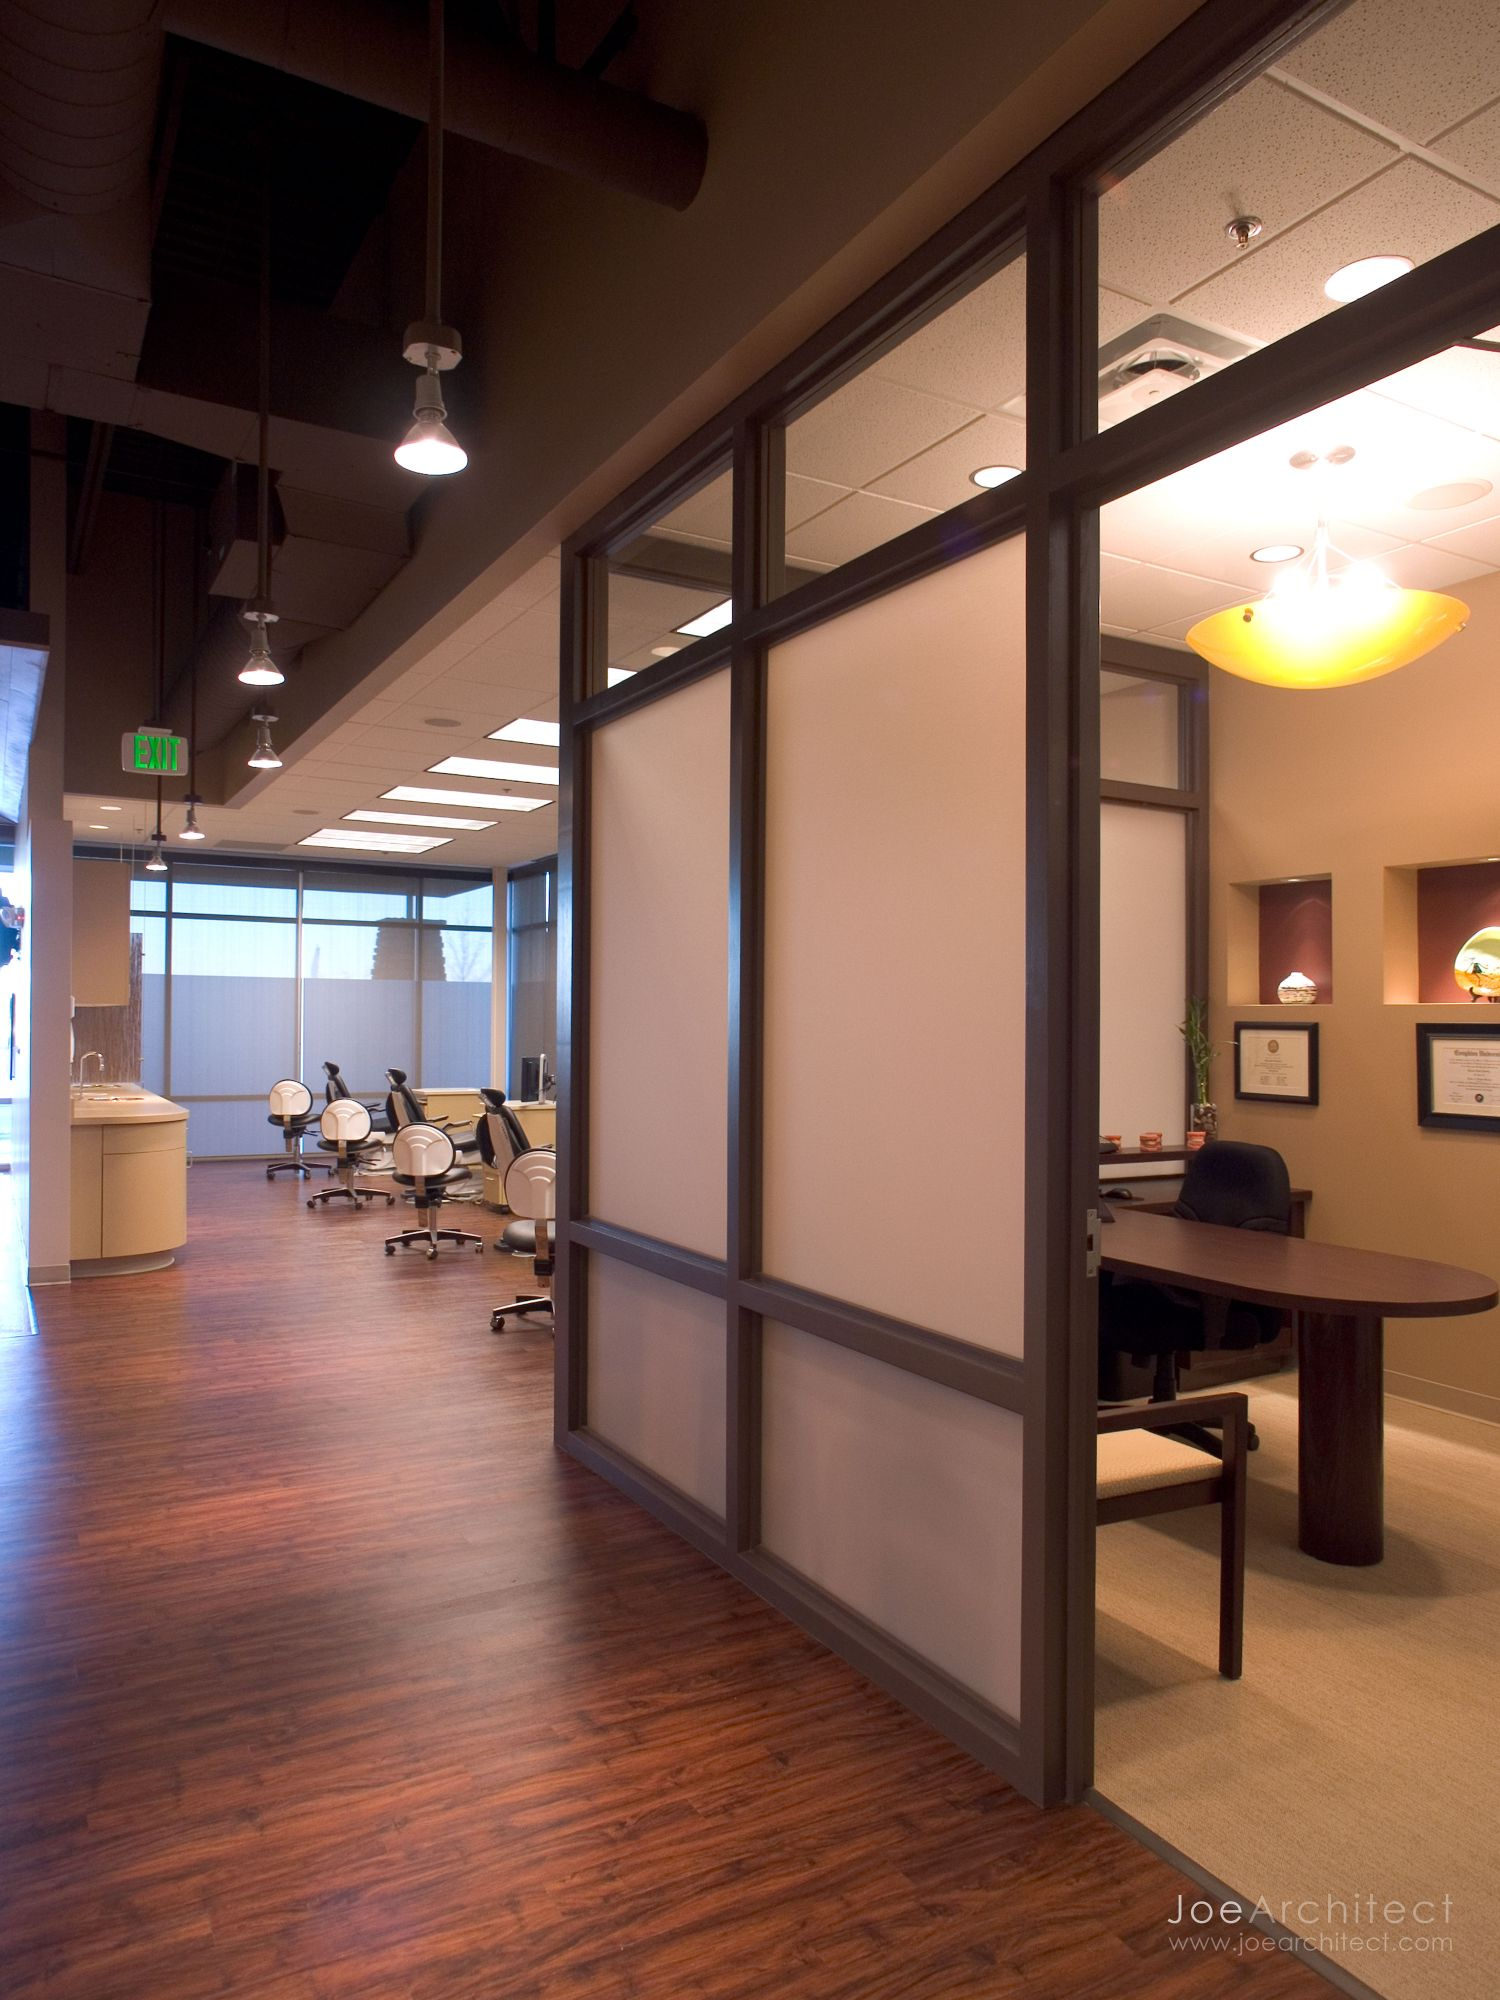 Prentice Orthodontics Consult to Treatment Bay